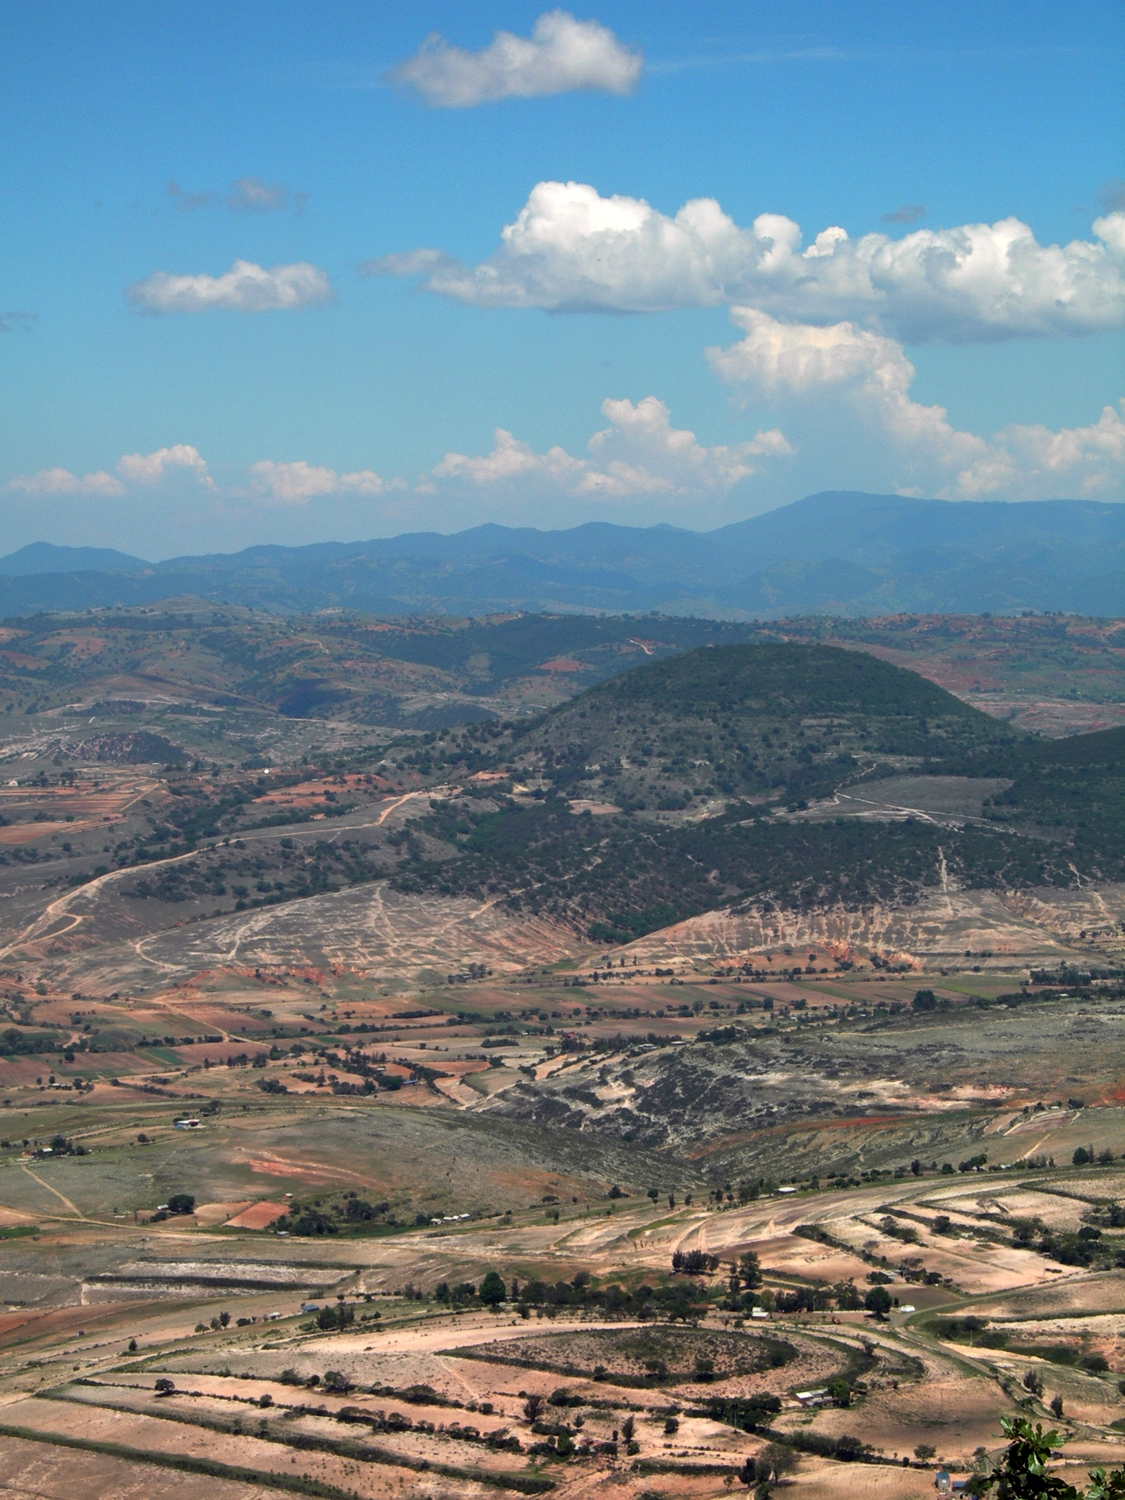 FIGURE 1. The Nochixtlan Valley in the Mixteca Alta. June 2007. Photo by Byron Hamann.